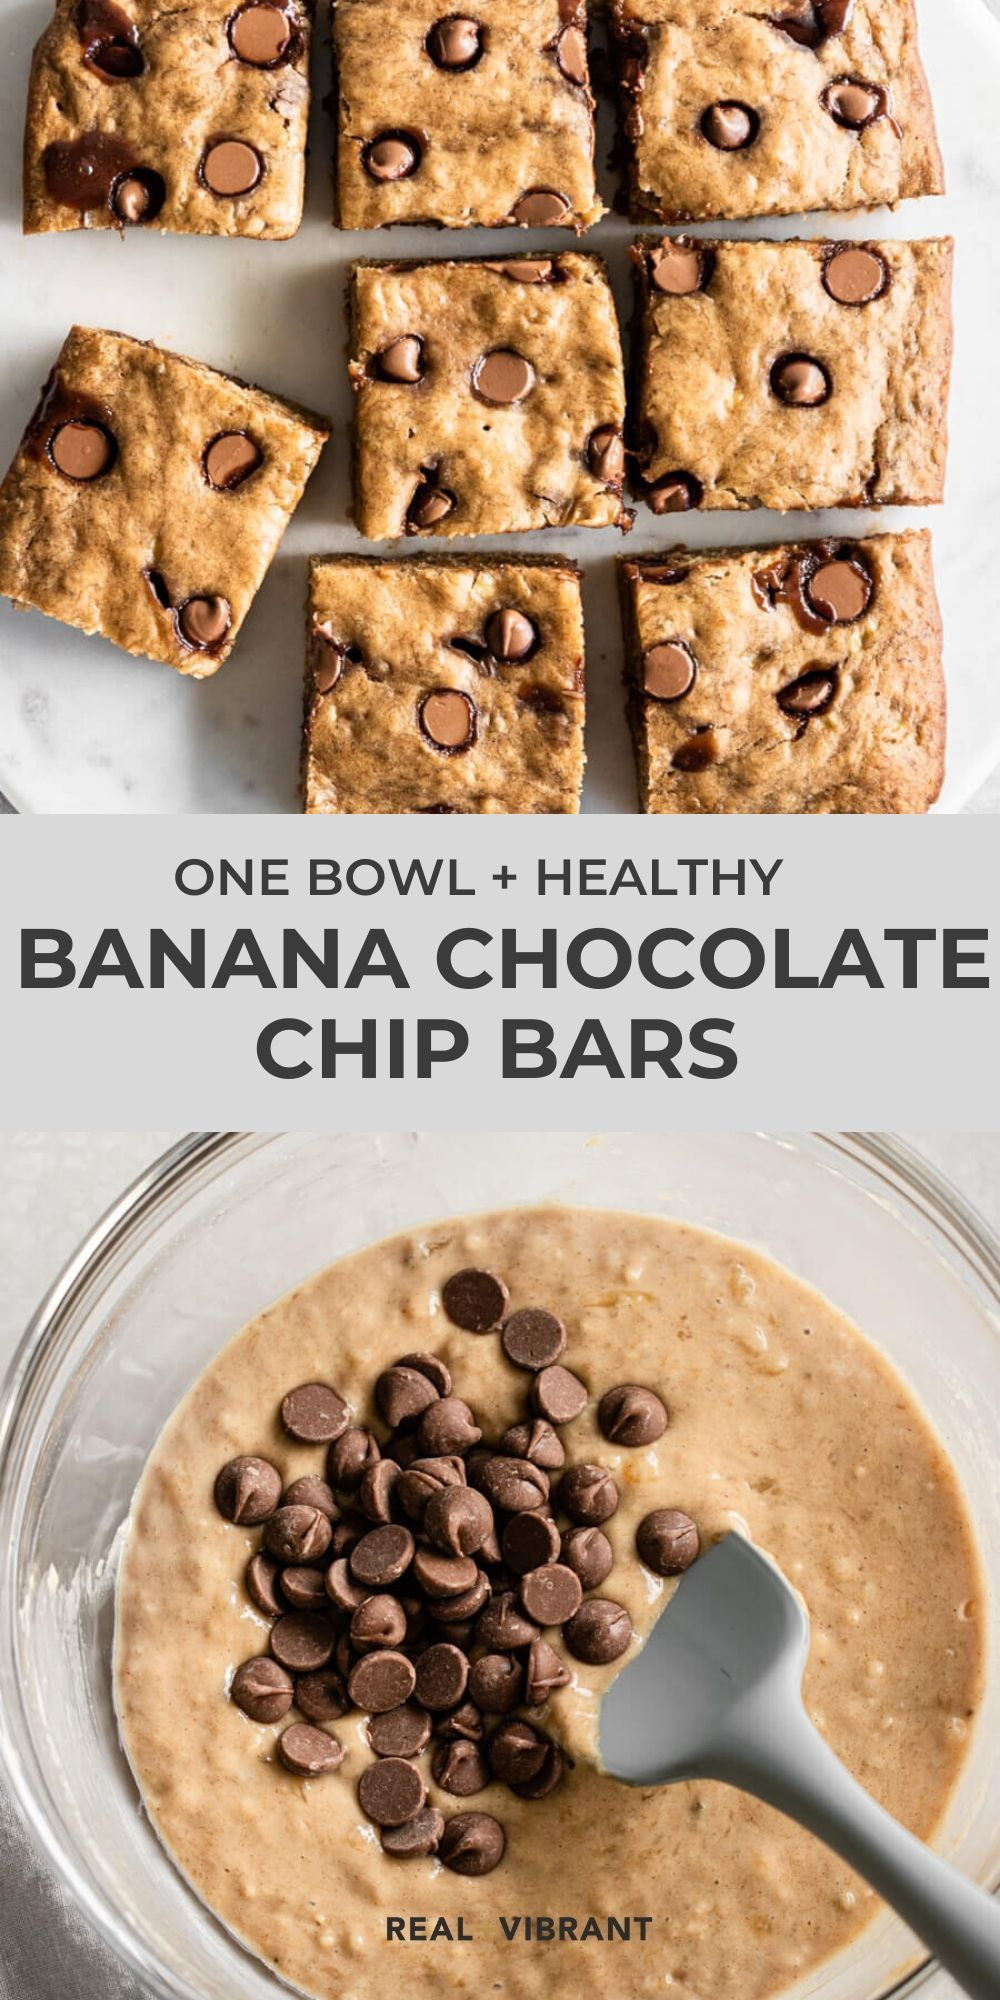 Banana Chocolate Chip Bars (Easy, Healthy, One Bowl!)